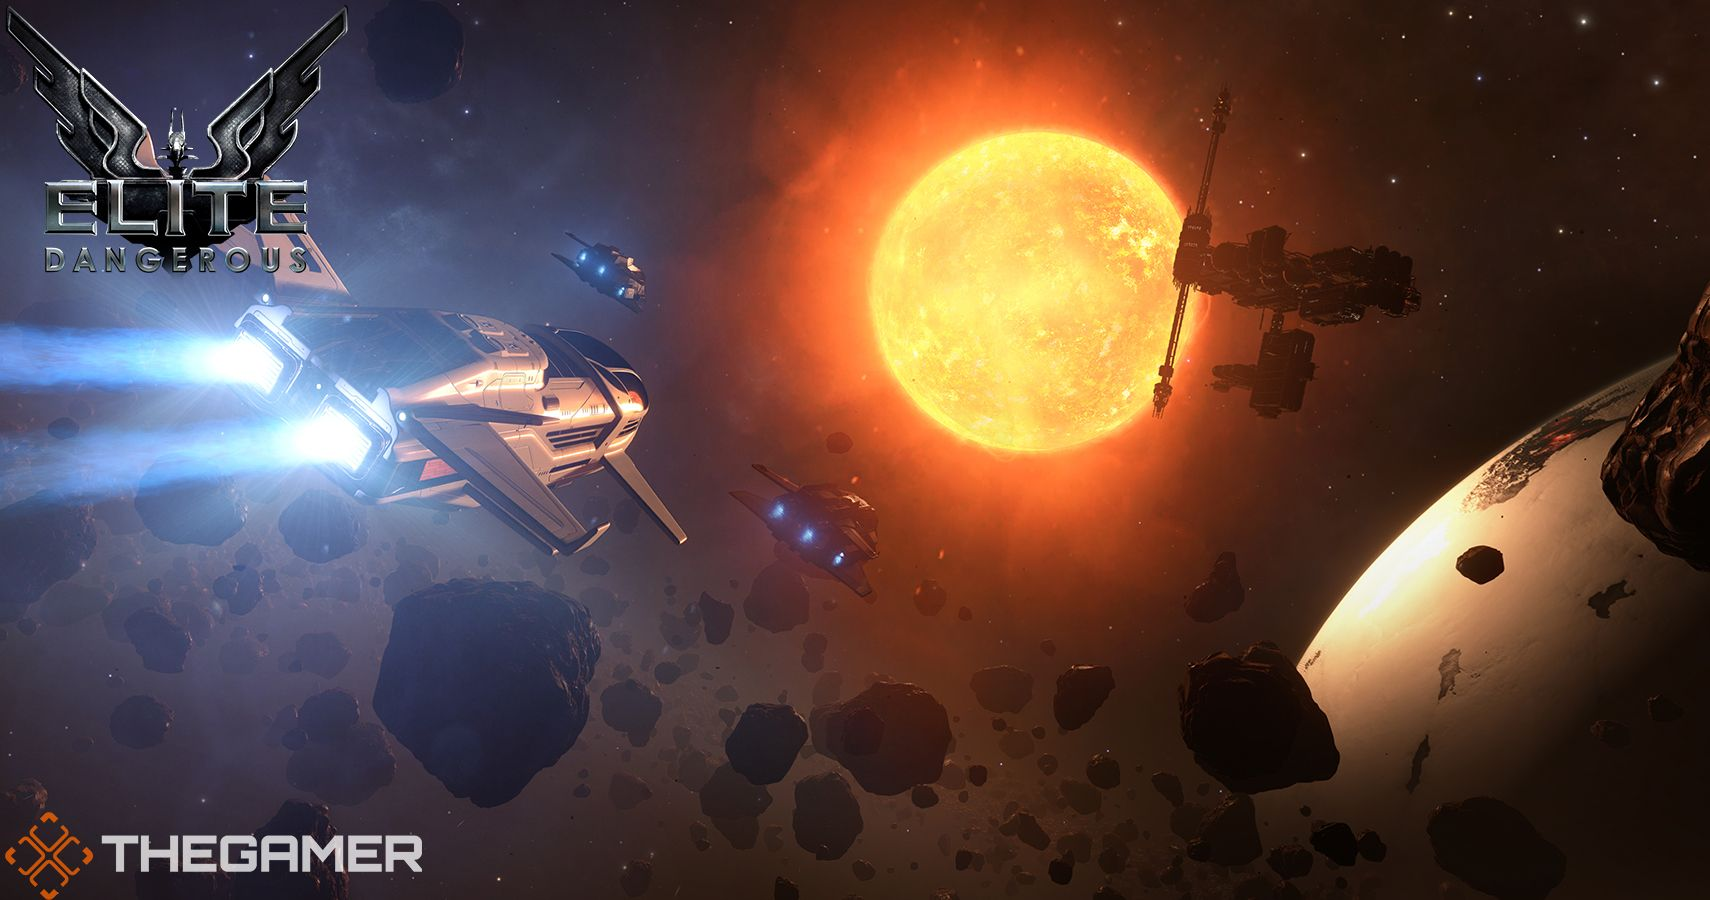 Elite Dangerous Players Are Running A Gulag, Using Trapped Newbies To Farm Resources